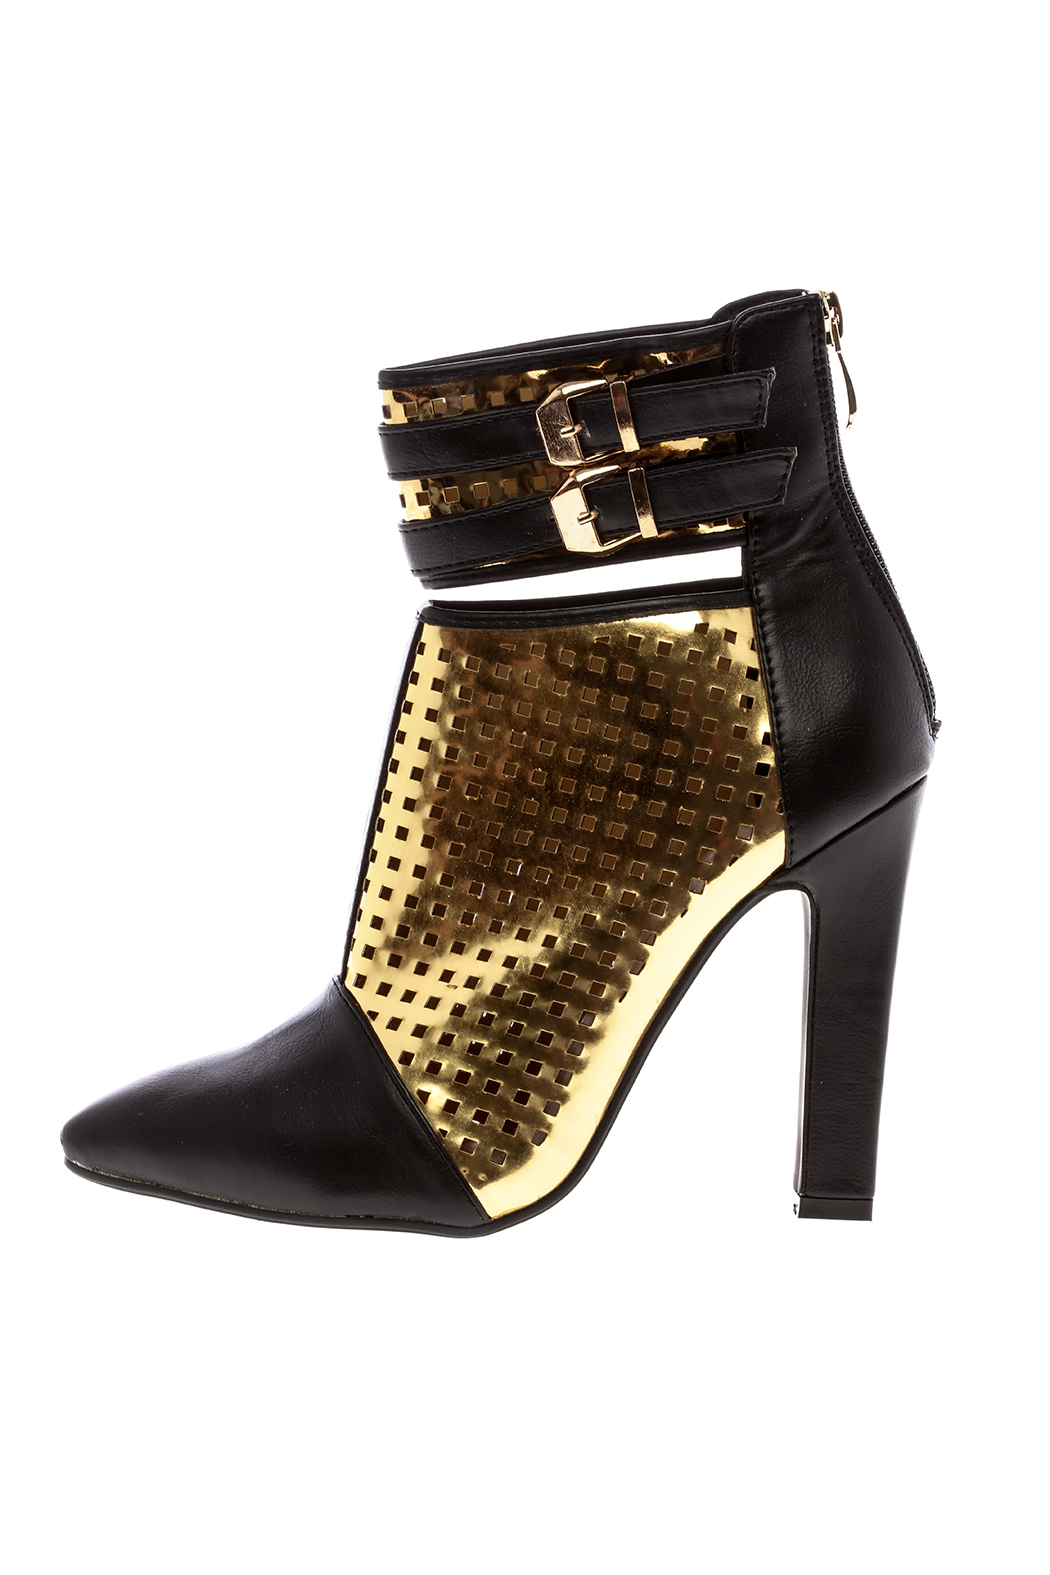 Machi Footwear Black And Gold Booties - Side Cropped Image